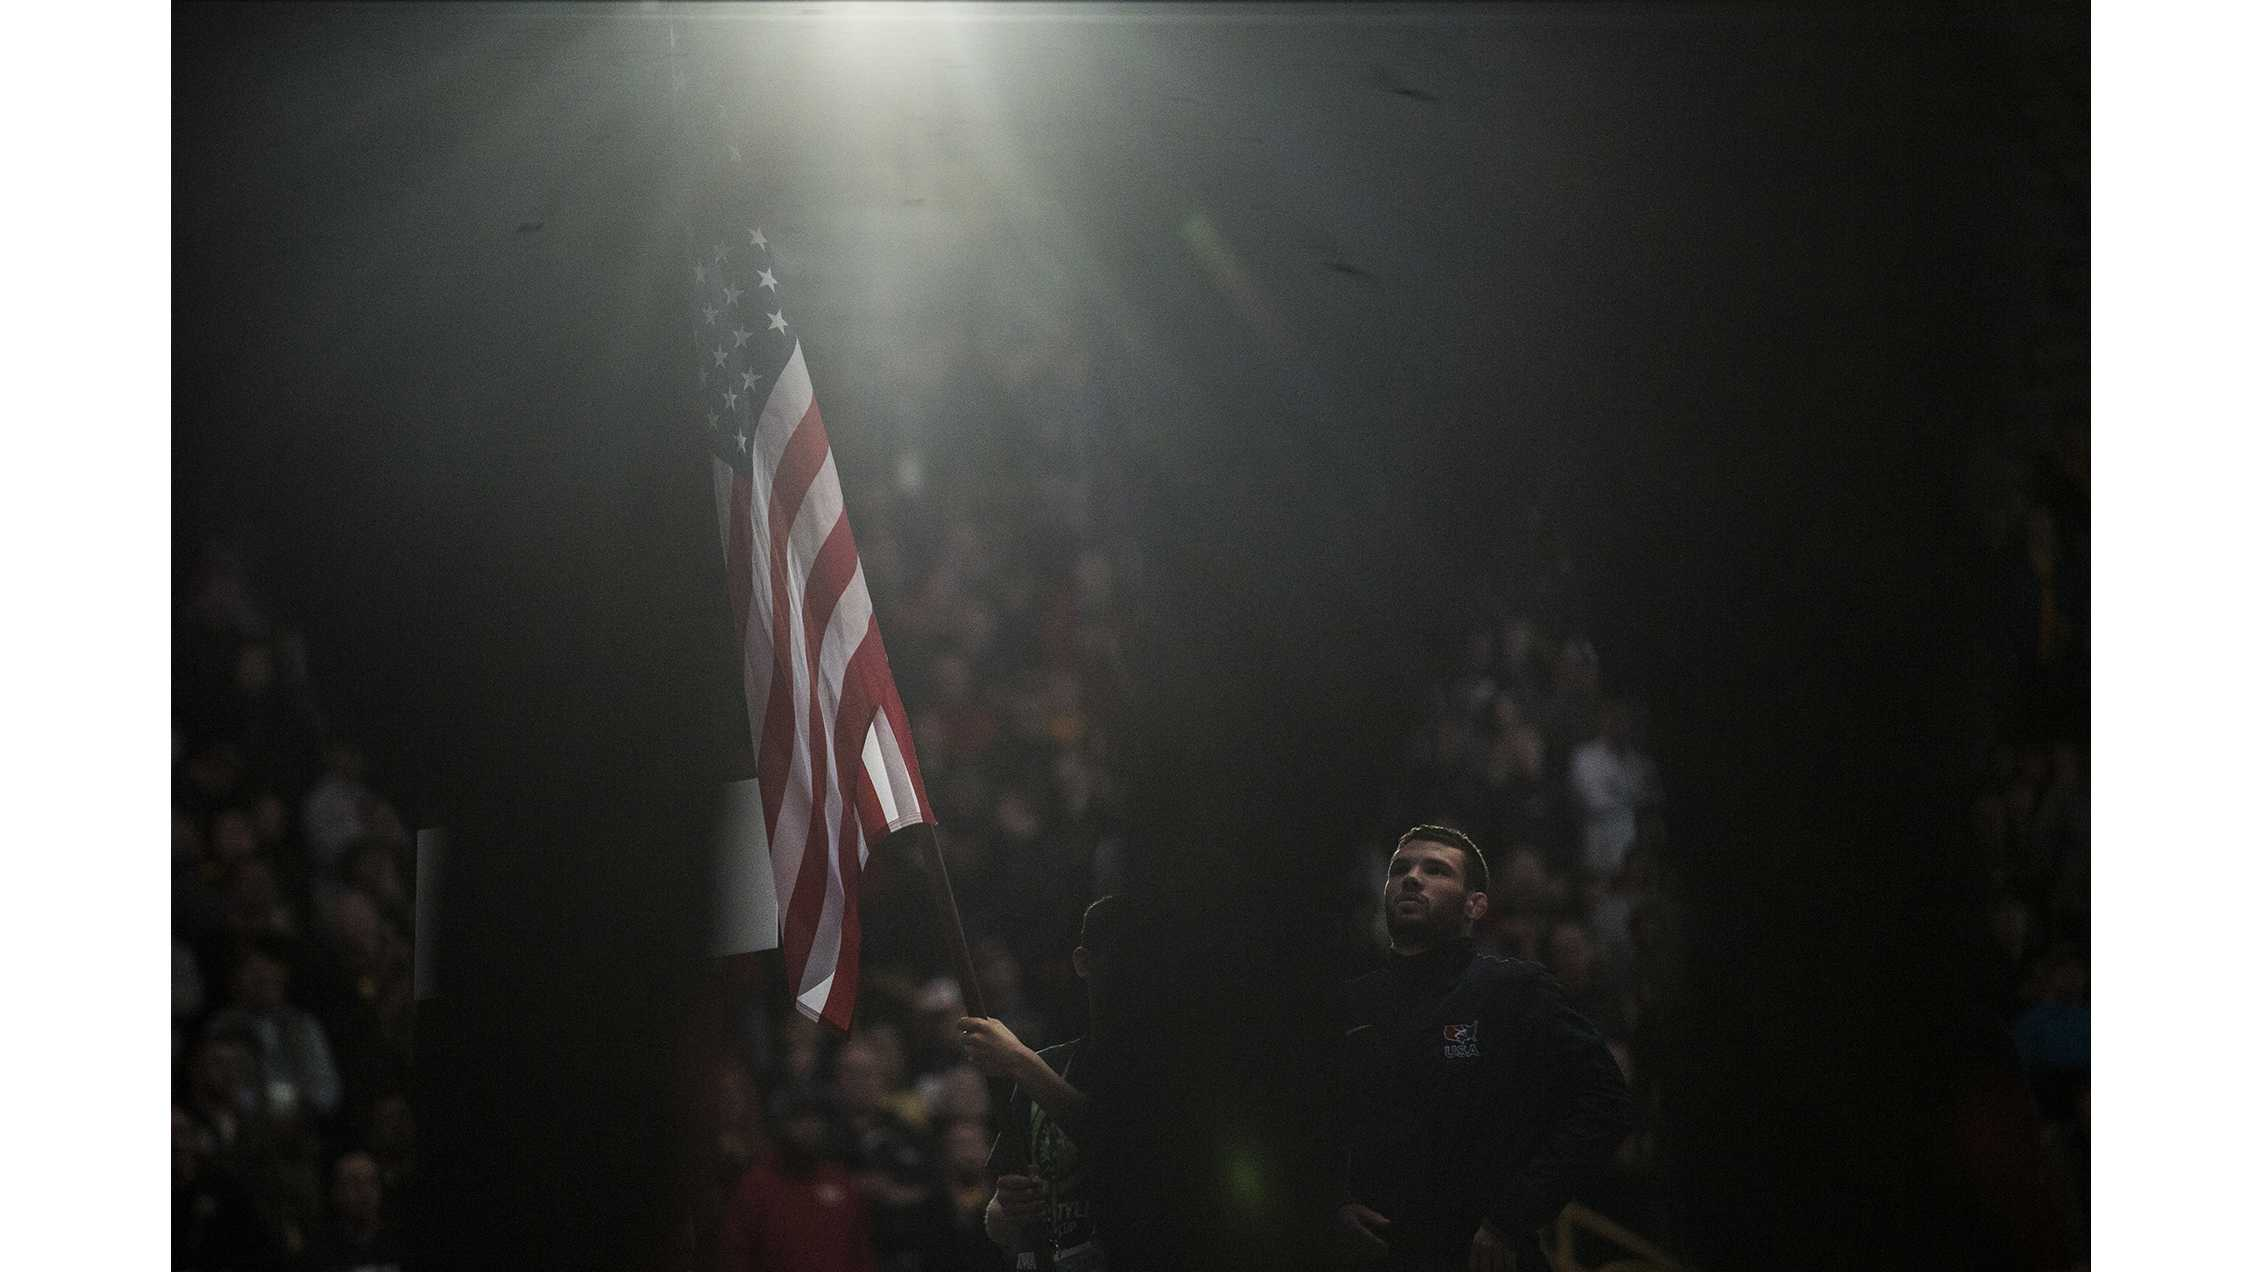 America's Thomas Gilman stands during the national anthem before Session 2 of the 2018 Men's Freestyle World Cup at Carver-Hawkeye Arena on Saturday, April 7. (Ben Allan Smith/The Daily Iowan)